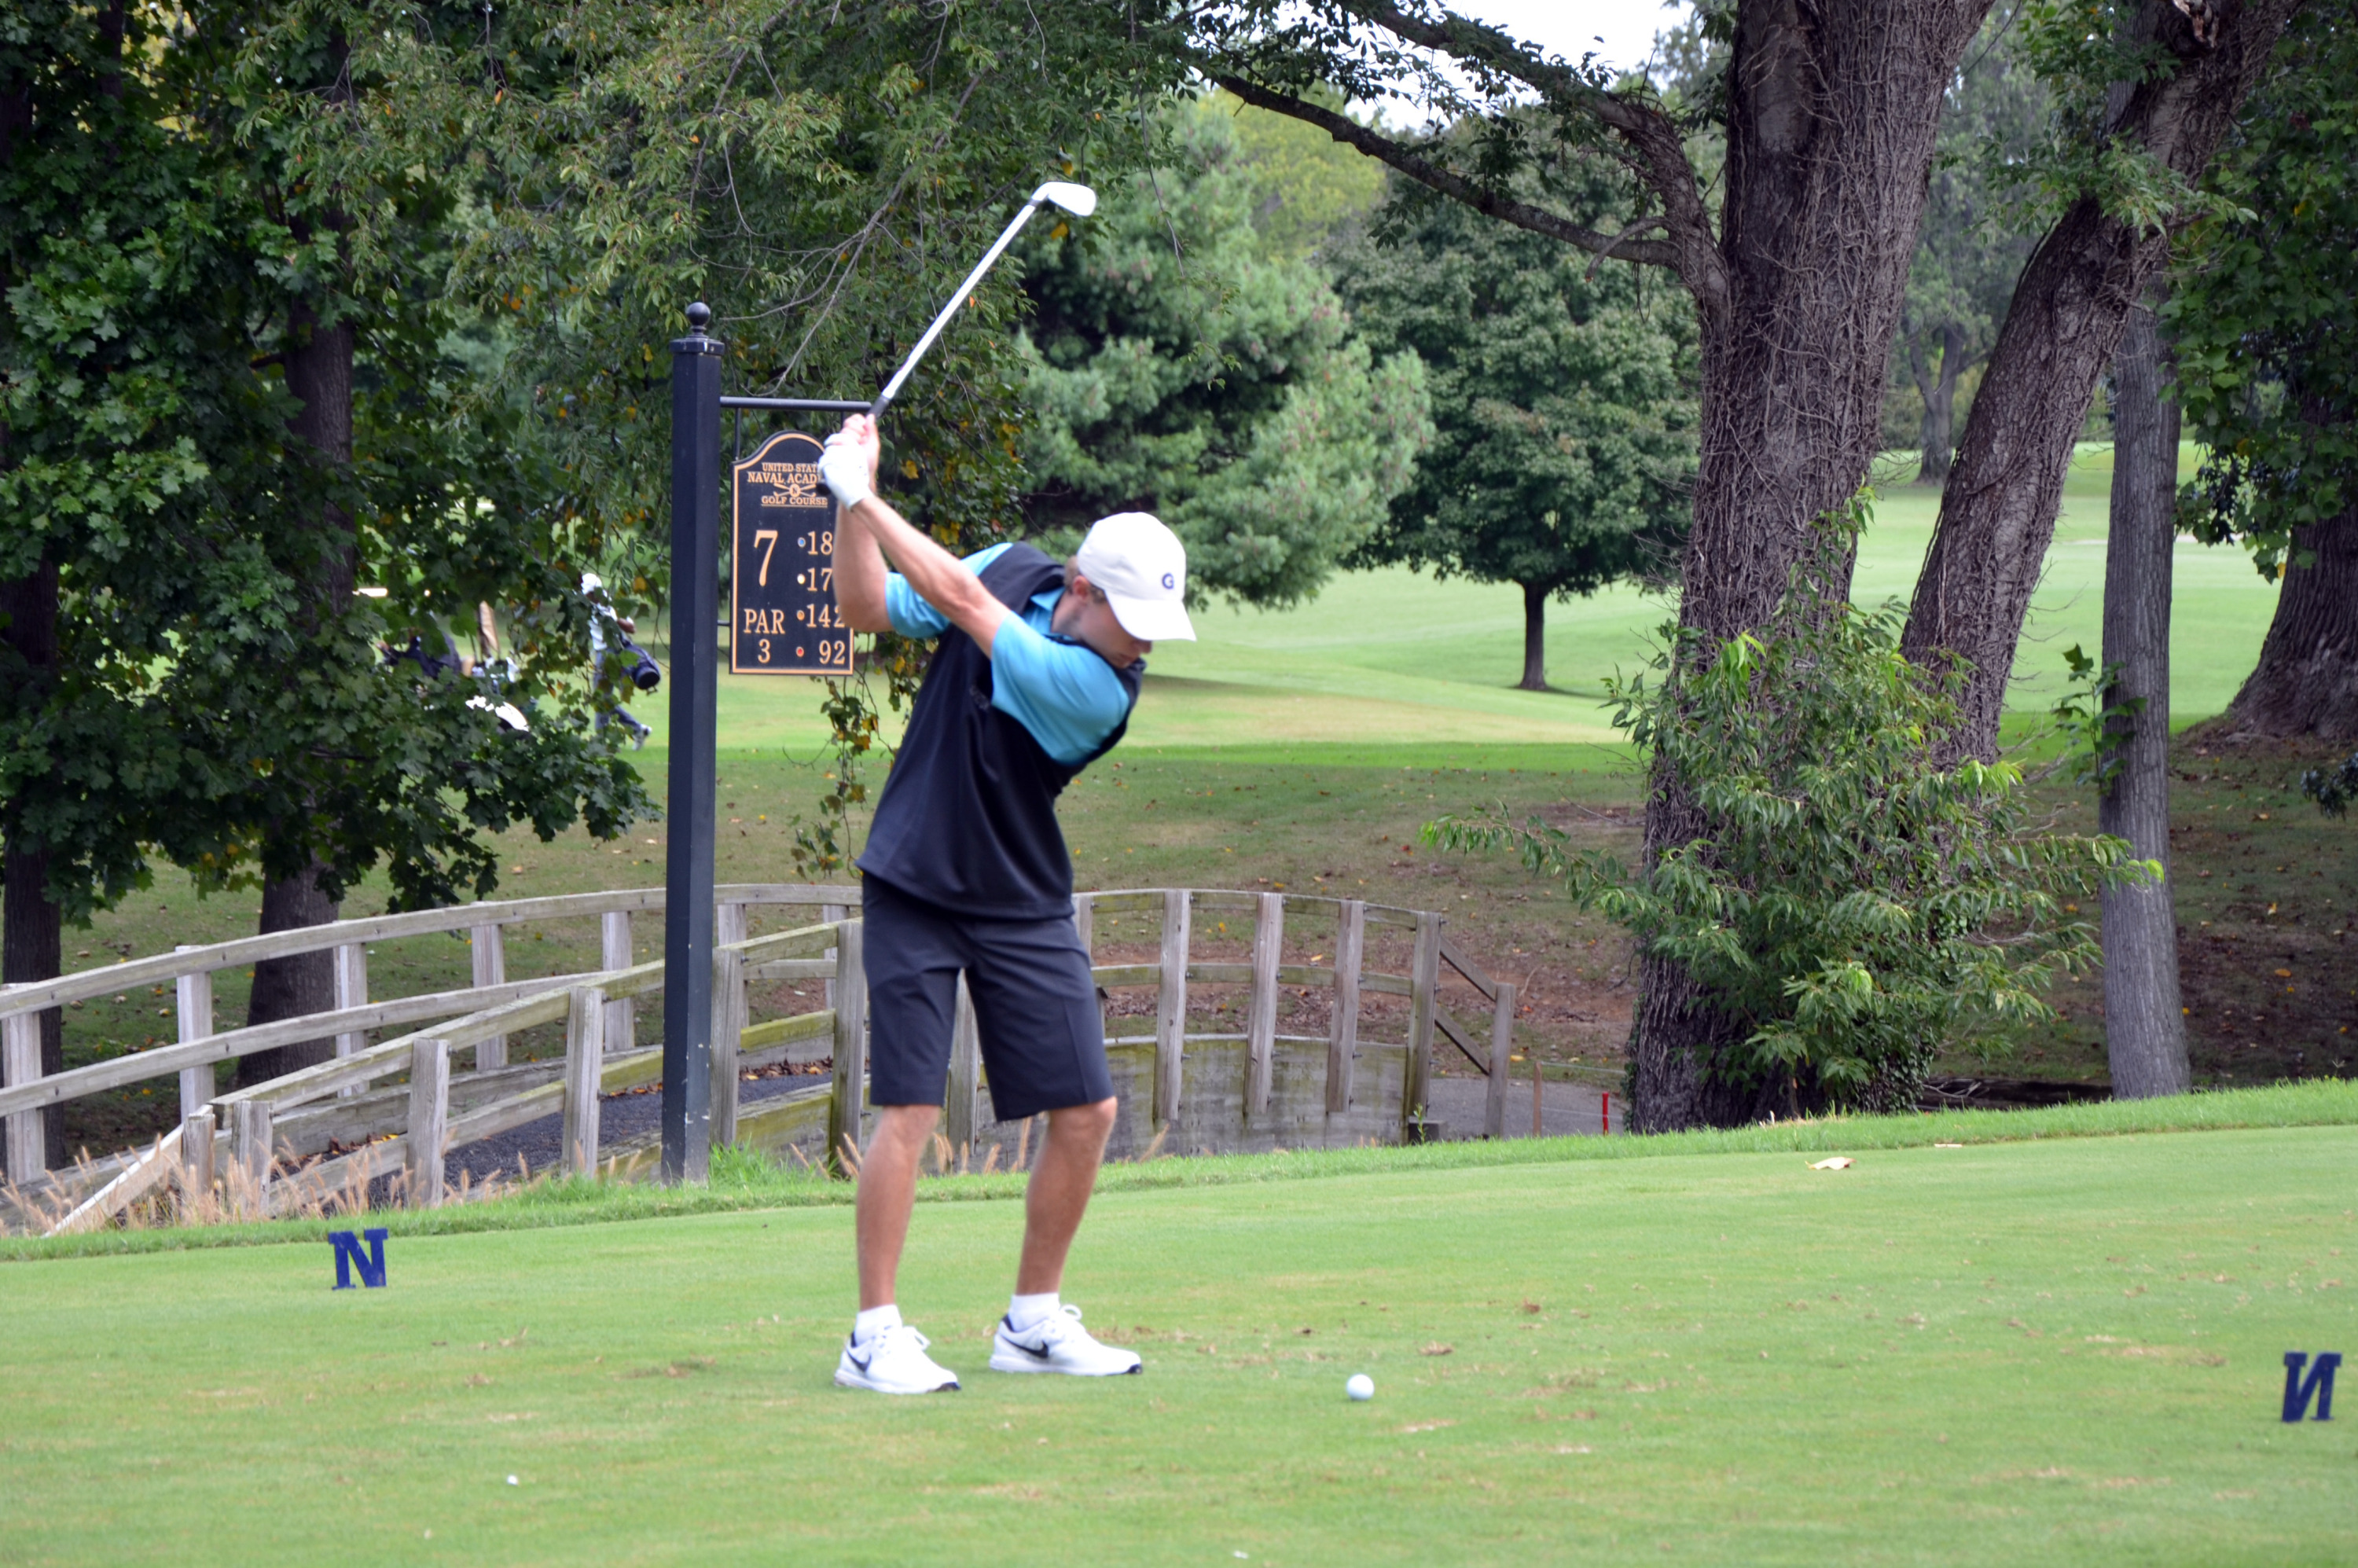 Harrison Rhoades is currently tied for 12th place at the Windon Memorial Classic.